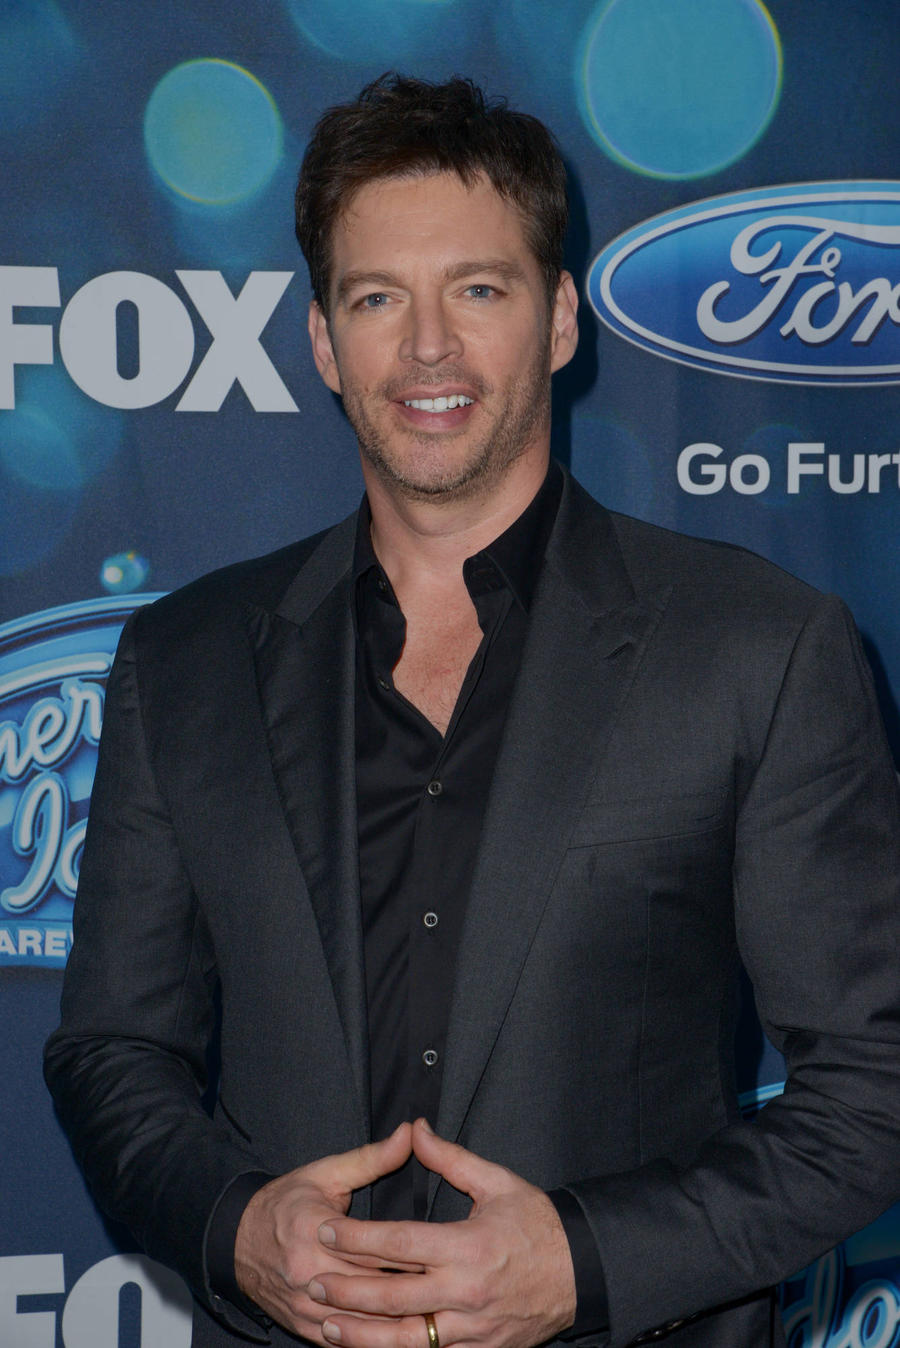 Harry Connick, Jr. Not Interested In A Return To Tv Talent Show Judging